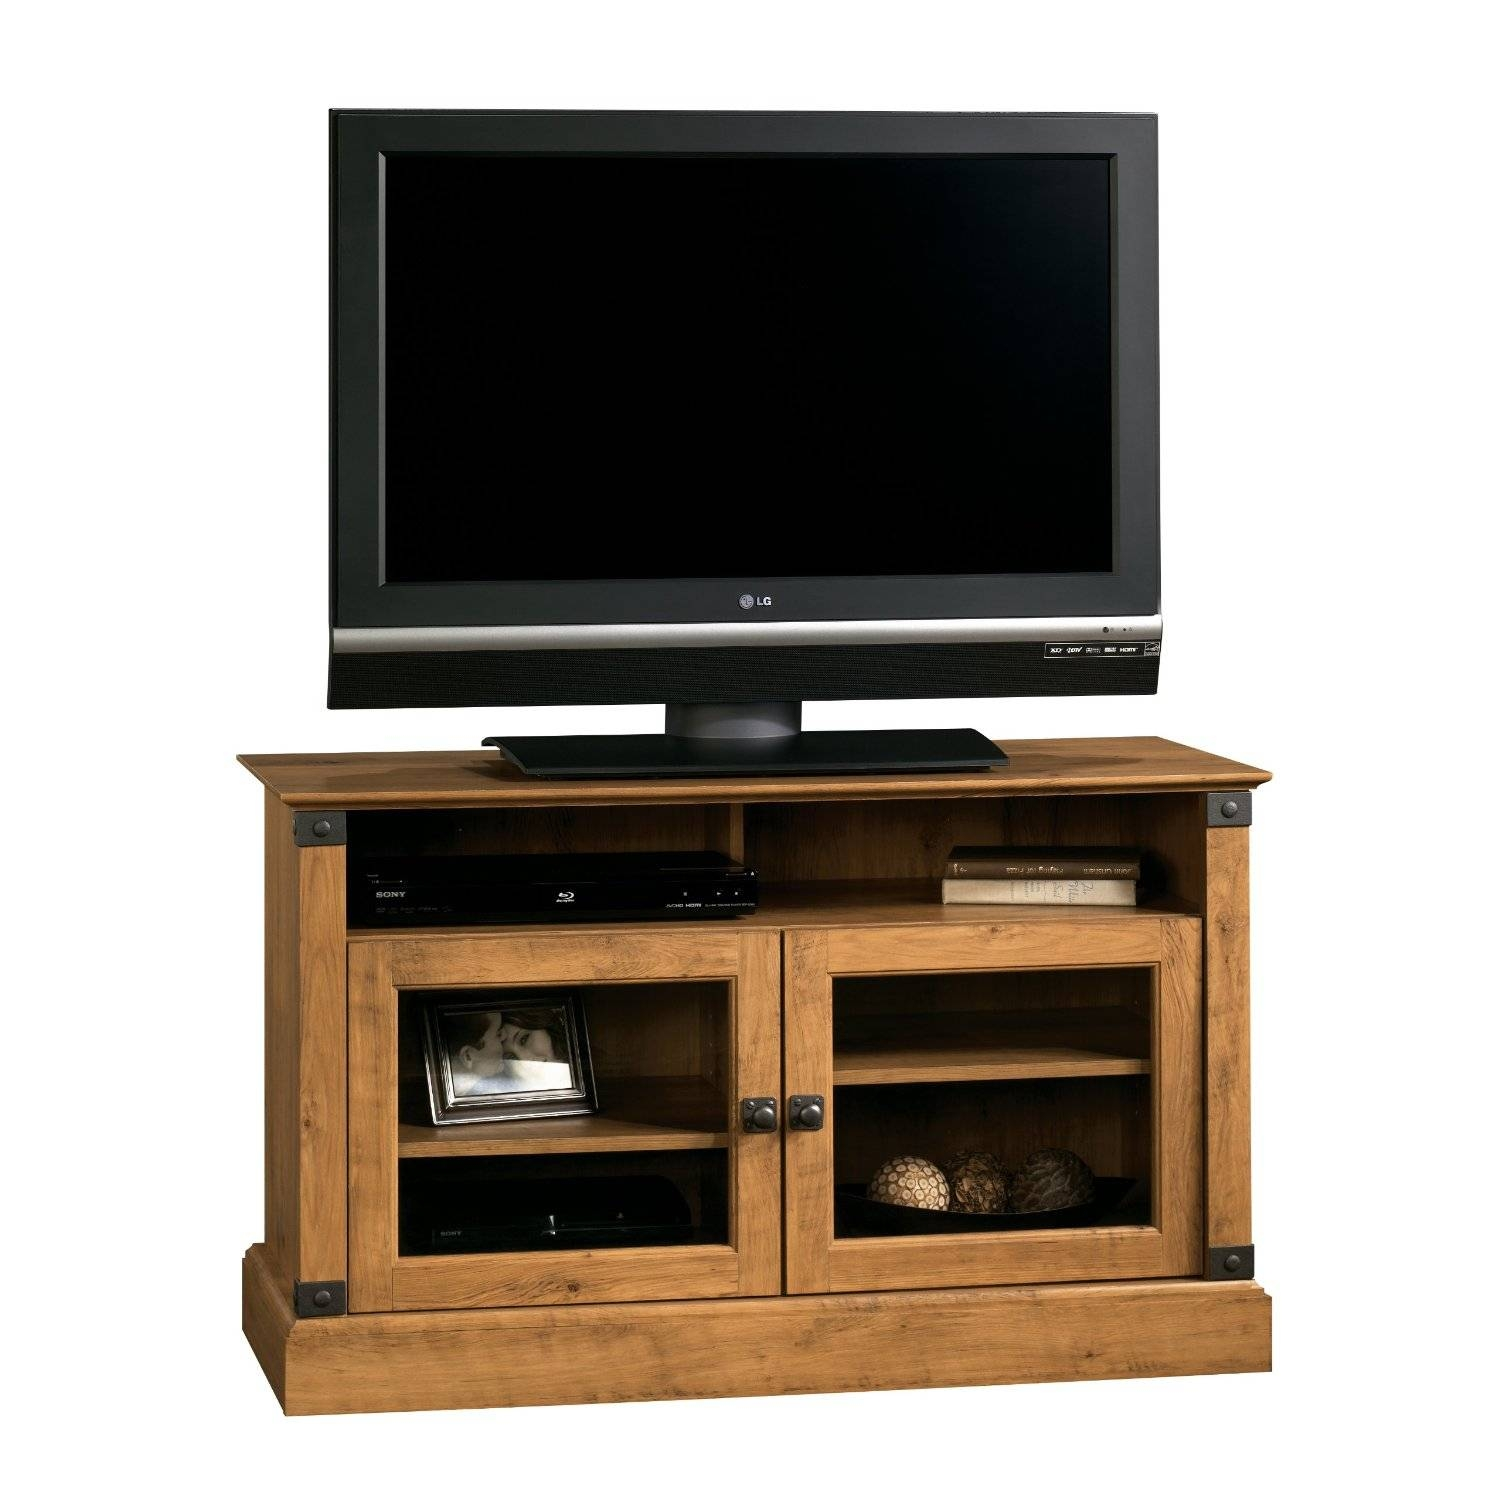 Fresh Cheap Cherry Wood Tv Stands Cabinets #17103 Intended For Cheap Wood Tv Stands (View 4 of 15)